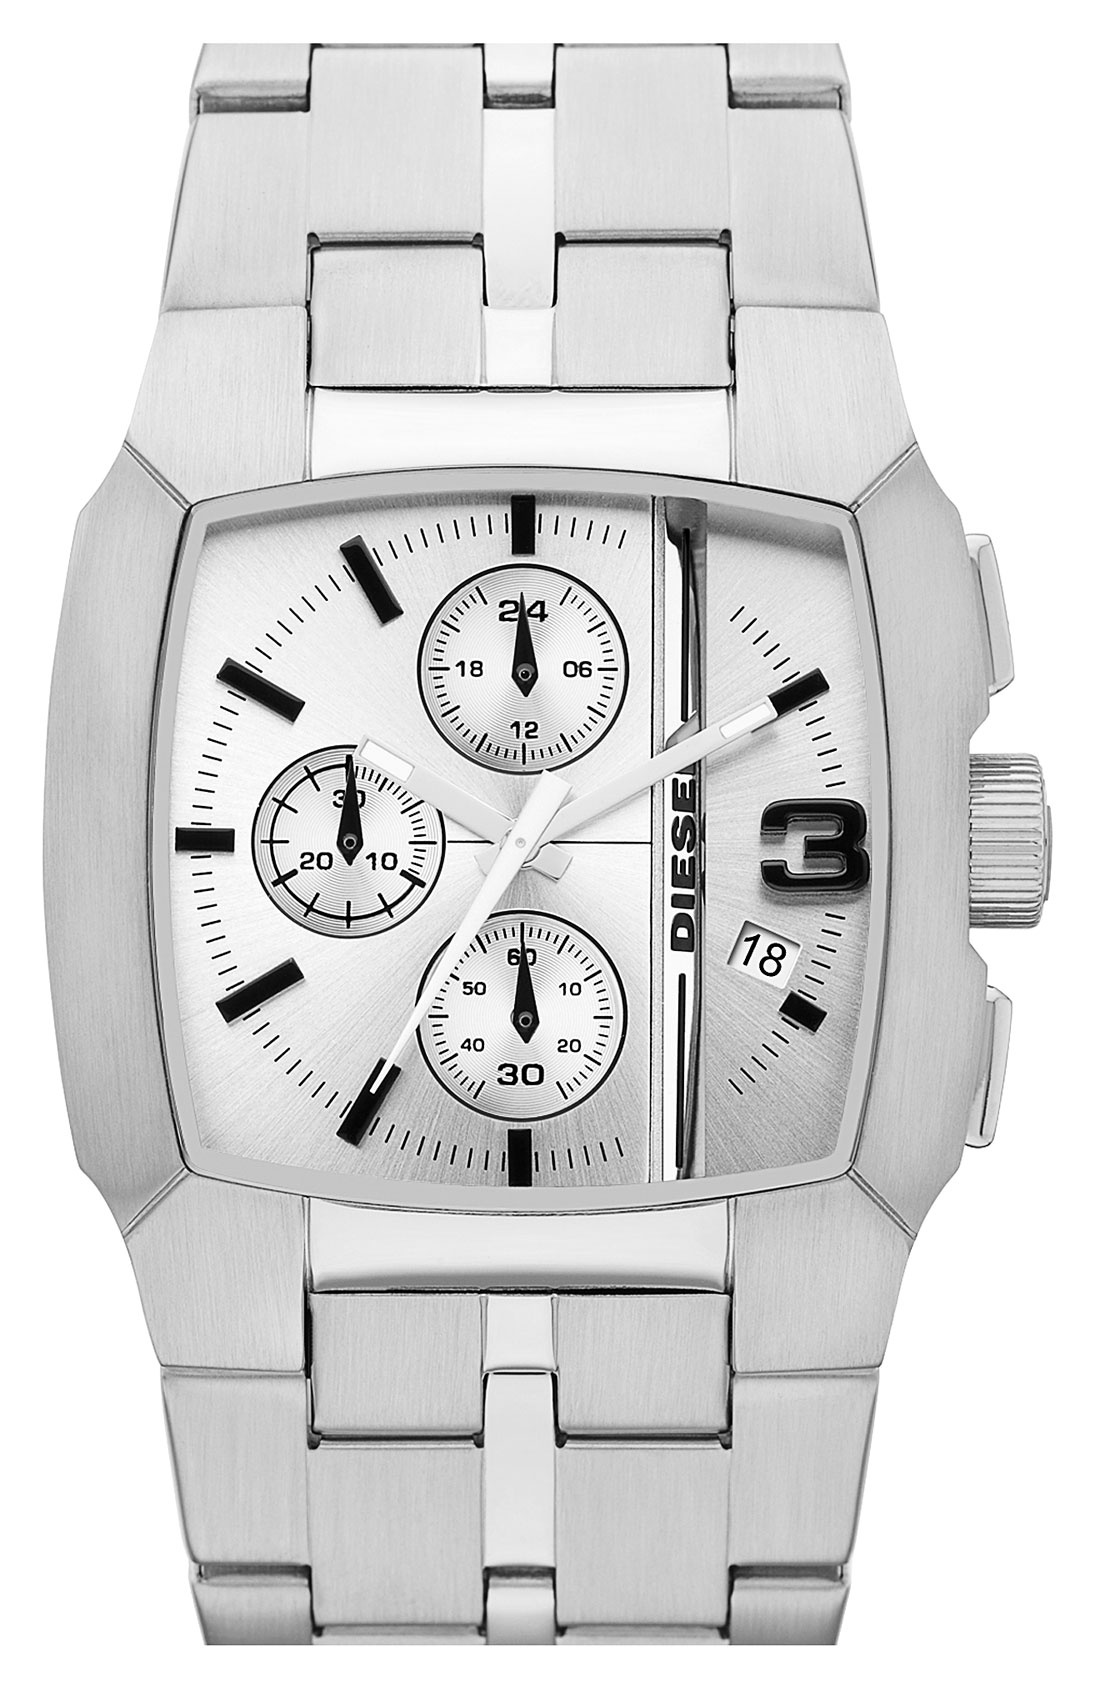 Square Dial Chronograph Watches For Men